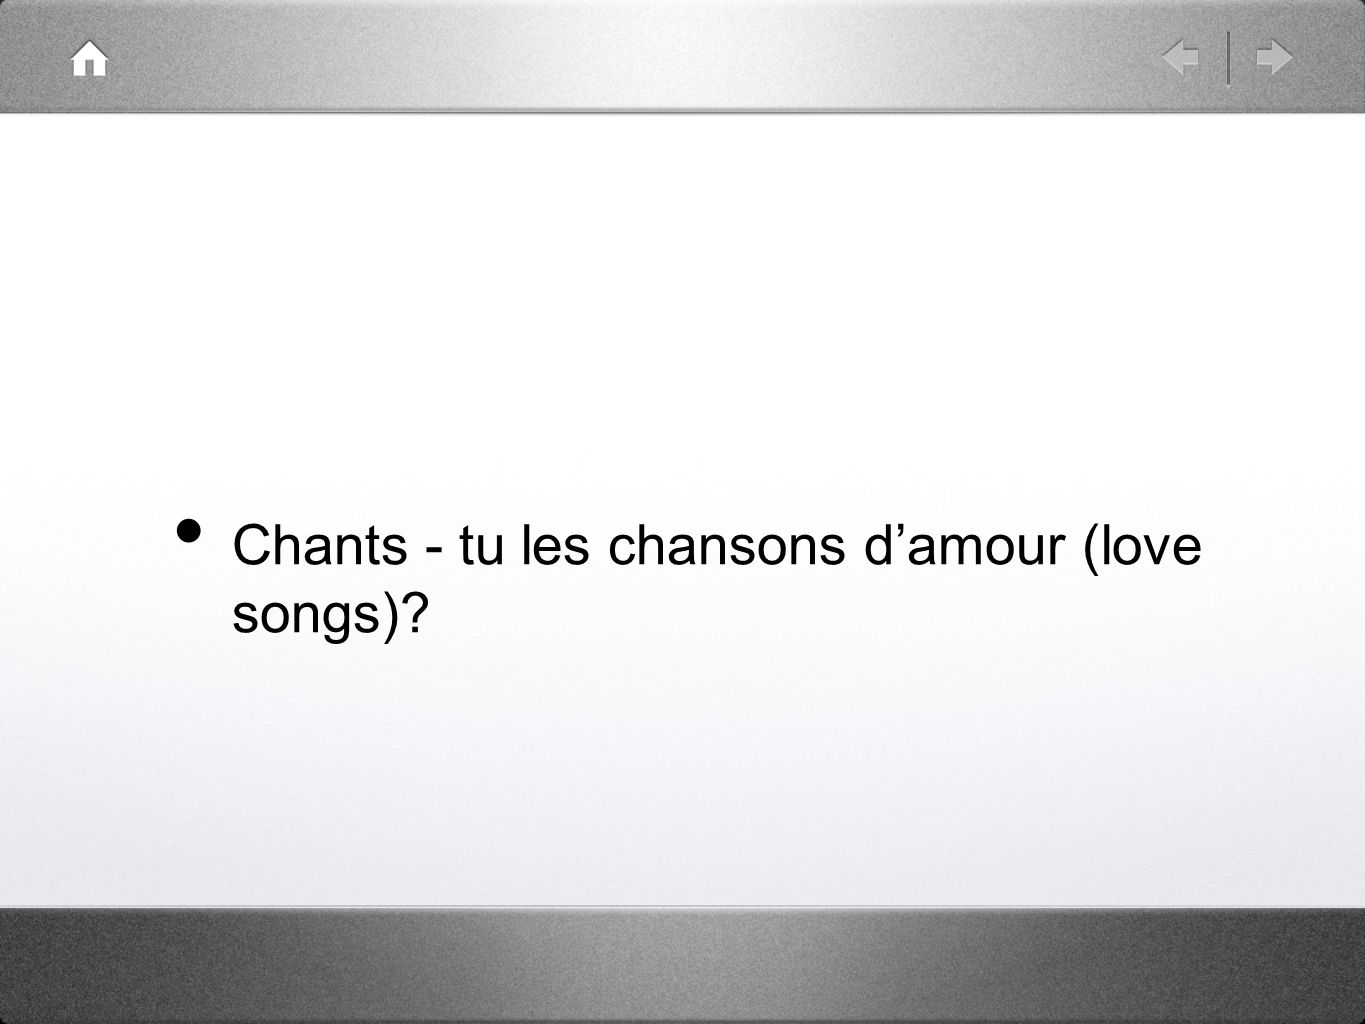 Chants - tu les chansons damour (love songs)